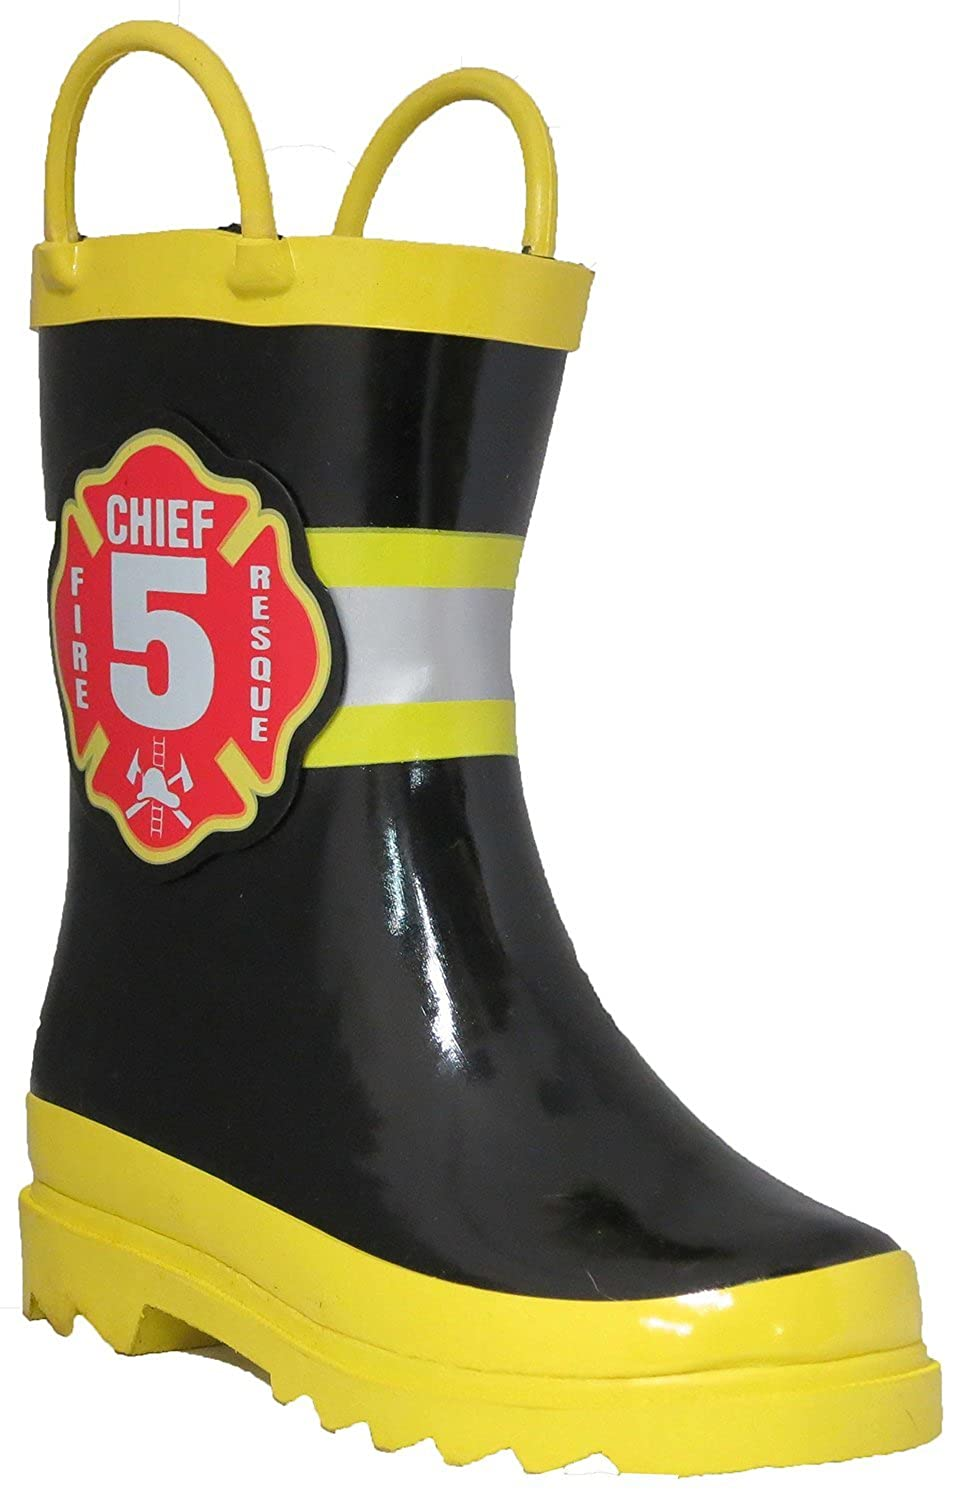 Puddle Play Kids Boys' Fire Chief Printed Waterproof Easy-On Rubber Rain Boots (Toddler/Little Kids)